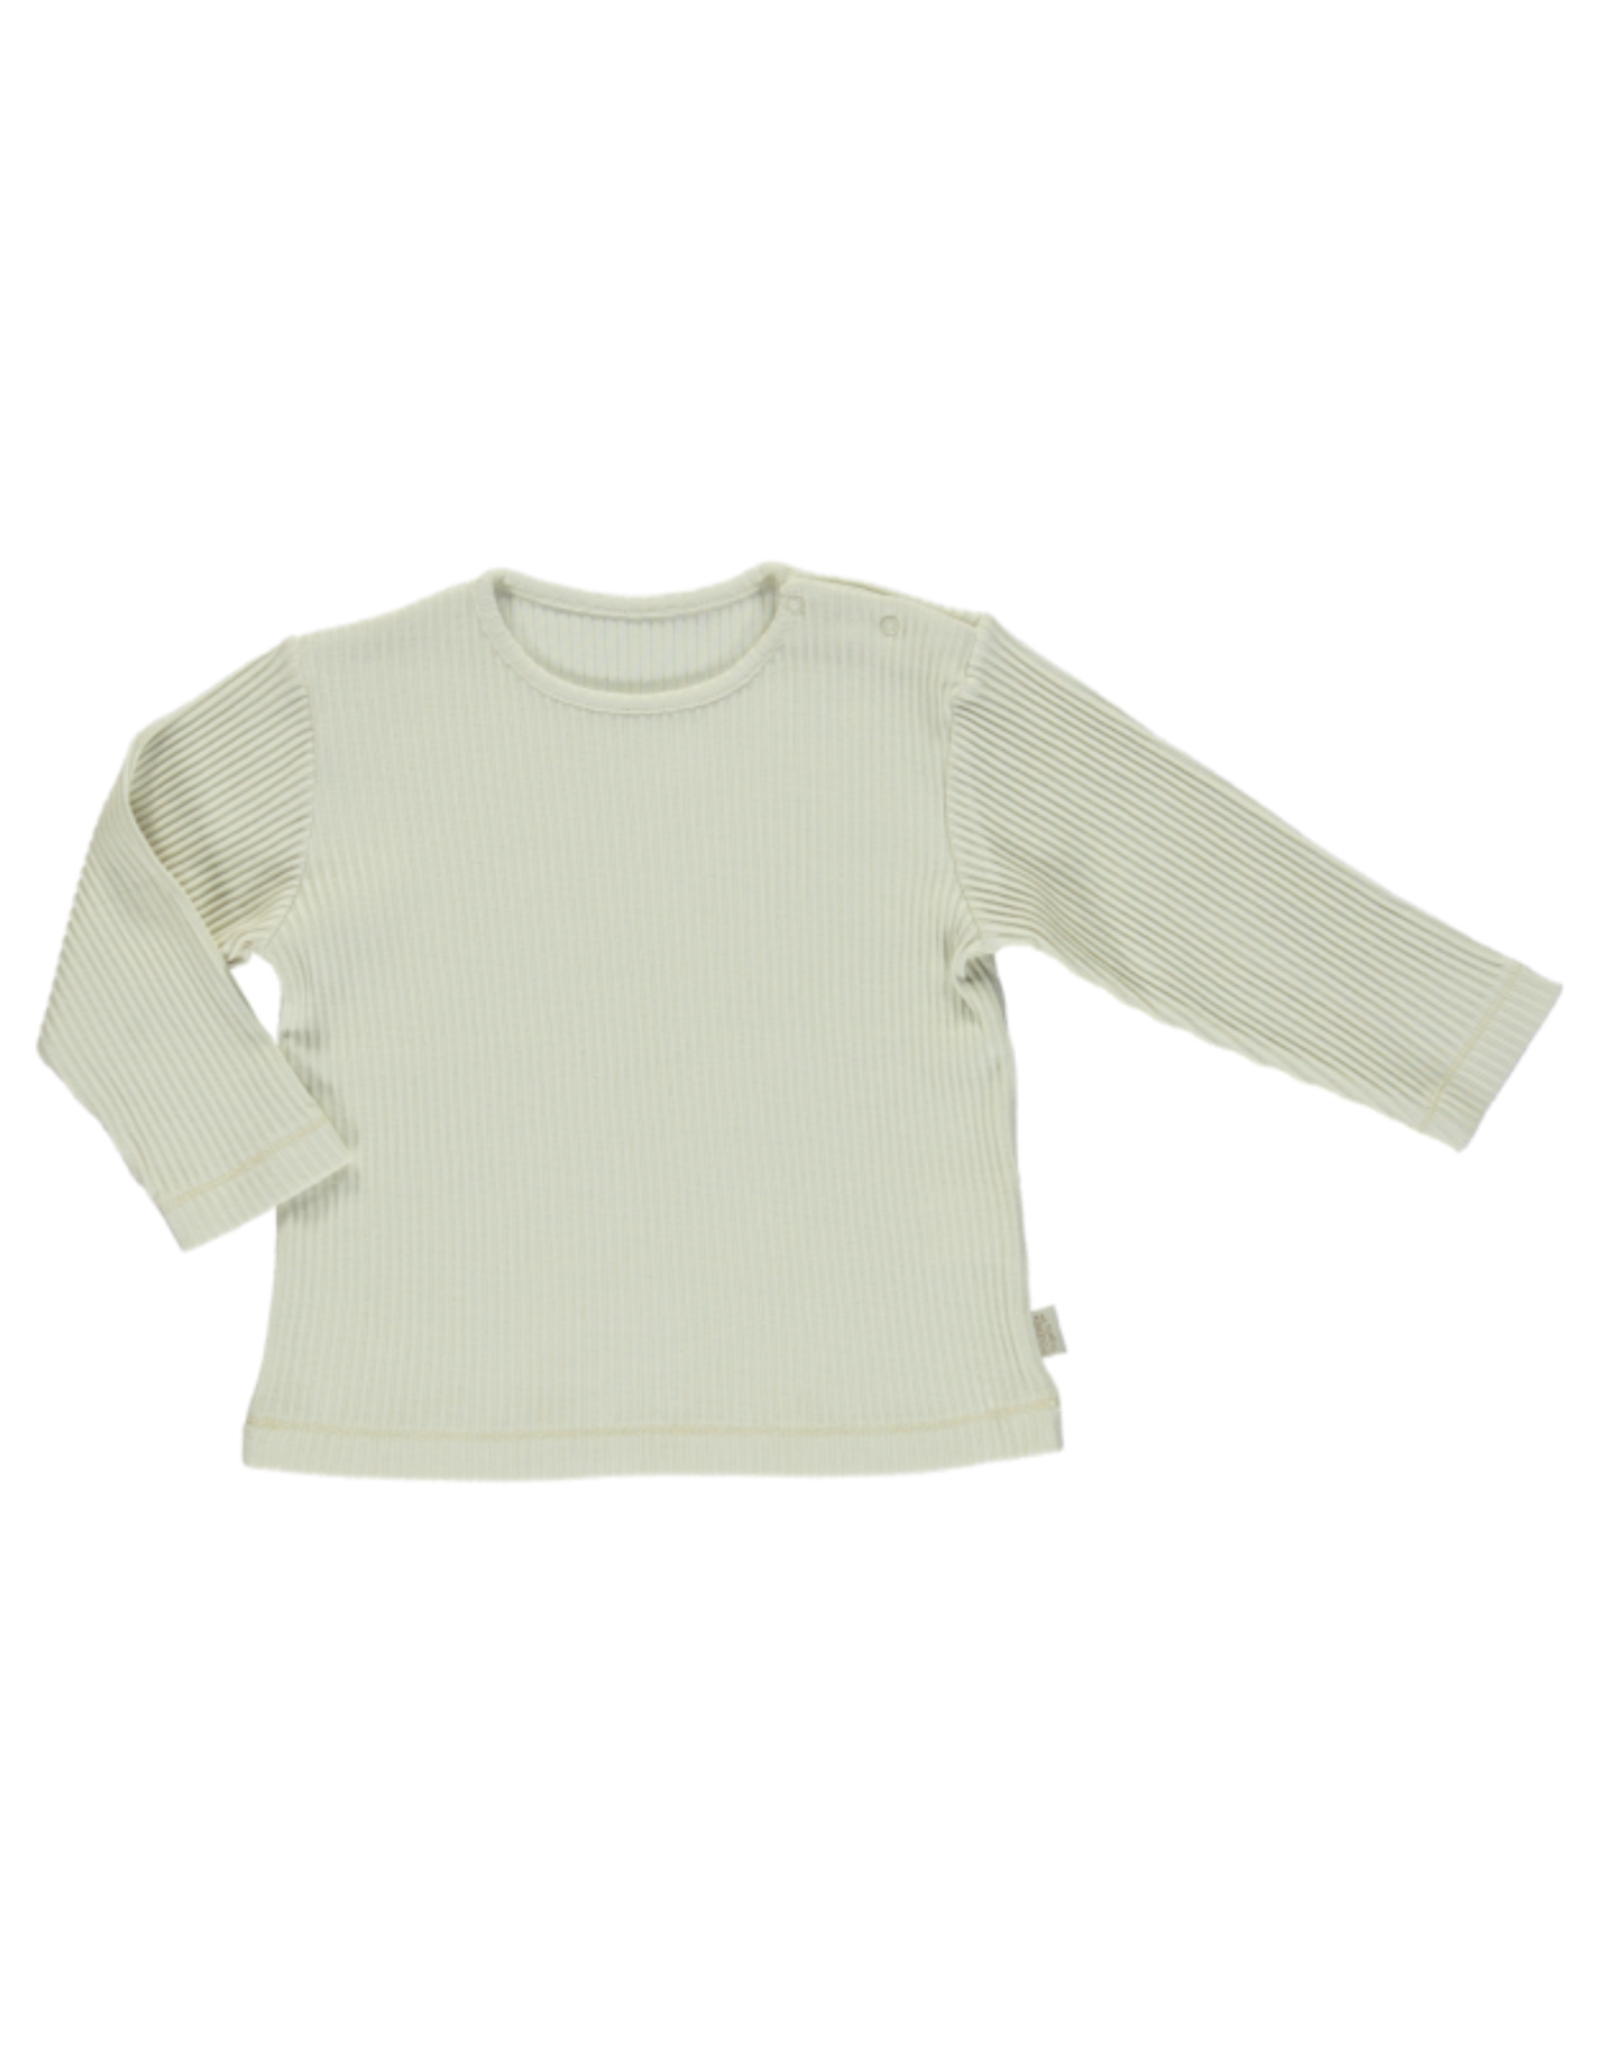 Poudre Organic Olive Ribbed T-Shirt